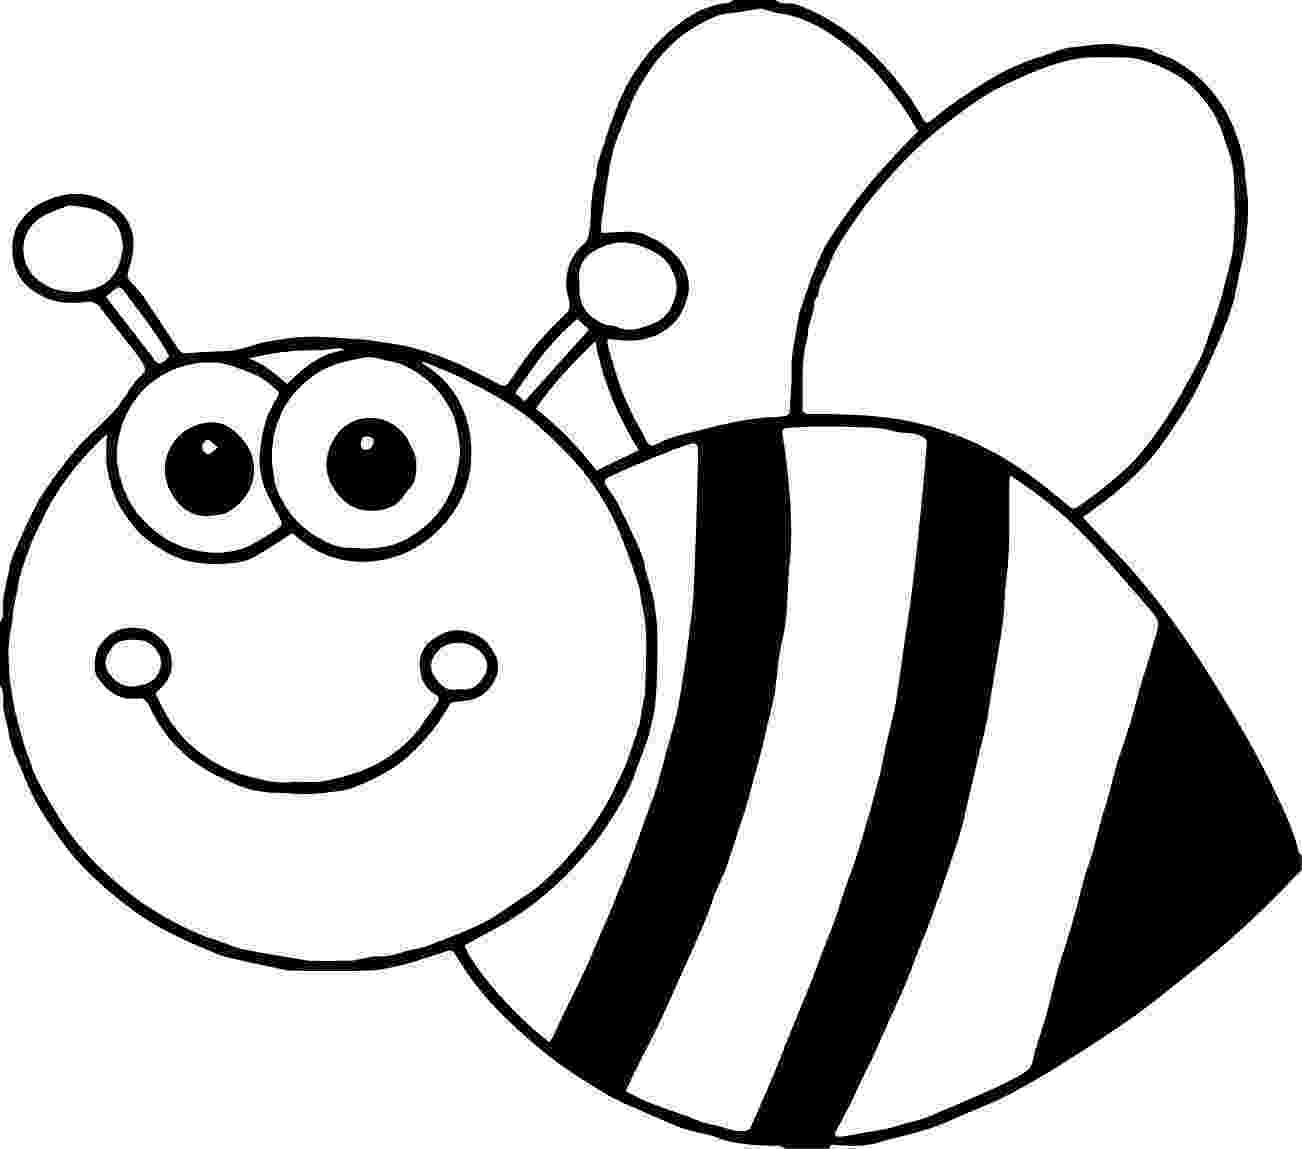 bumble bee coloring pages printable free printable bumble bee coloring pages for kids bee bumble printable pages coloring